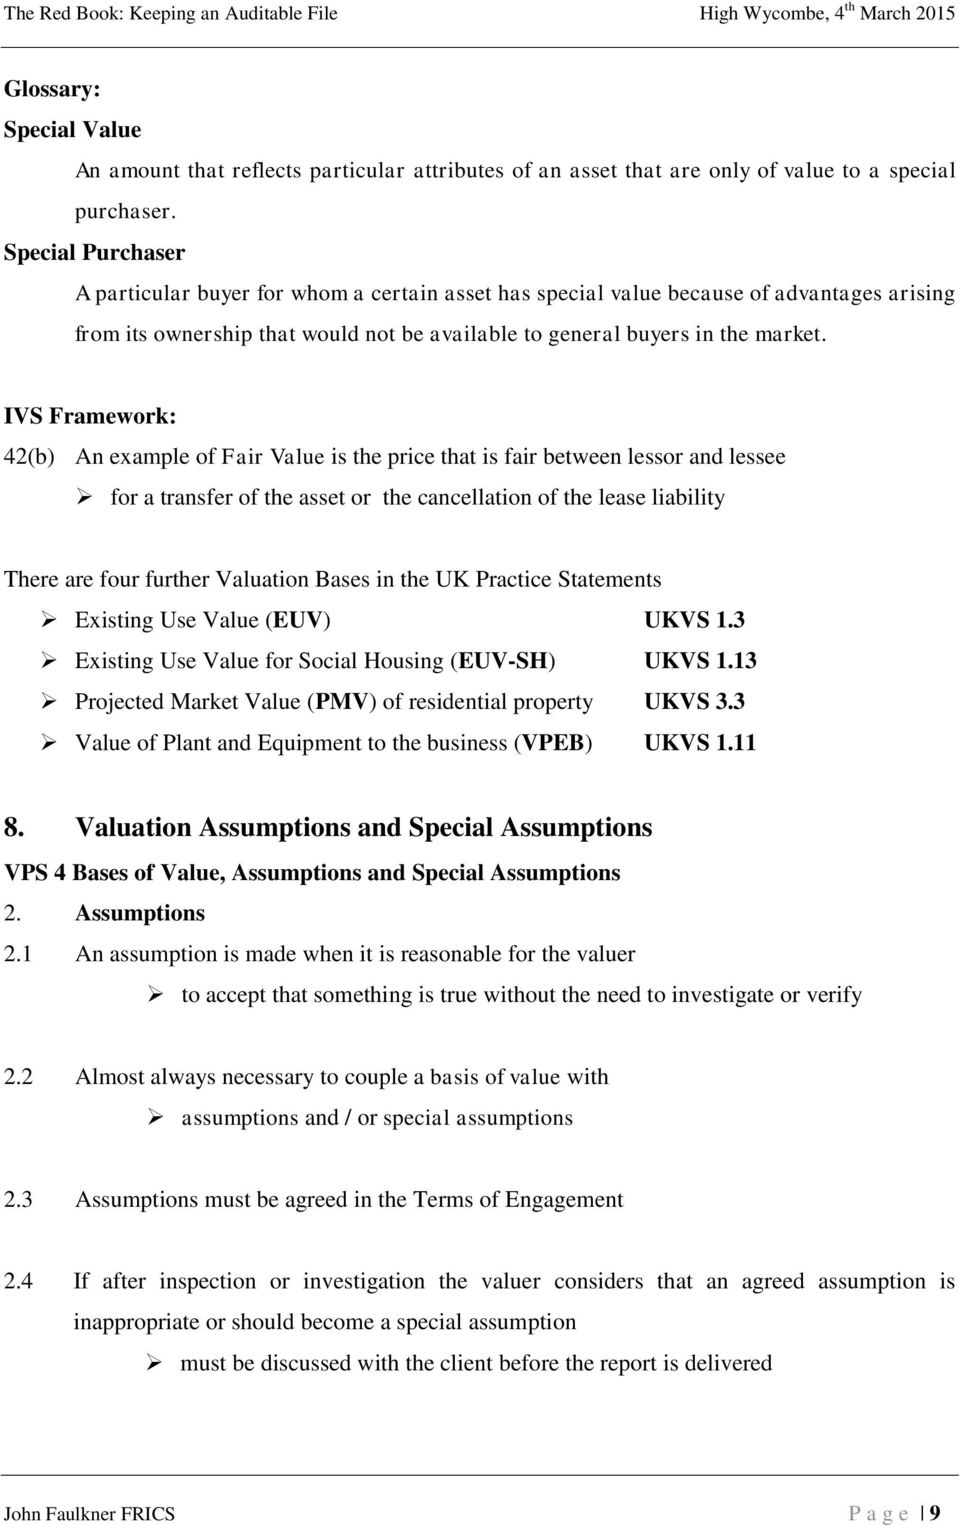 IVS Framework: 42(b) An example of Fair Value is the price that is fair between lessor and lessee for a transfer of the asset or the cancellation of the lease liability There are four further